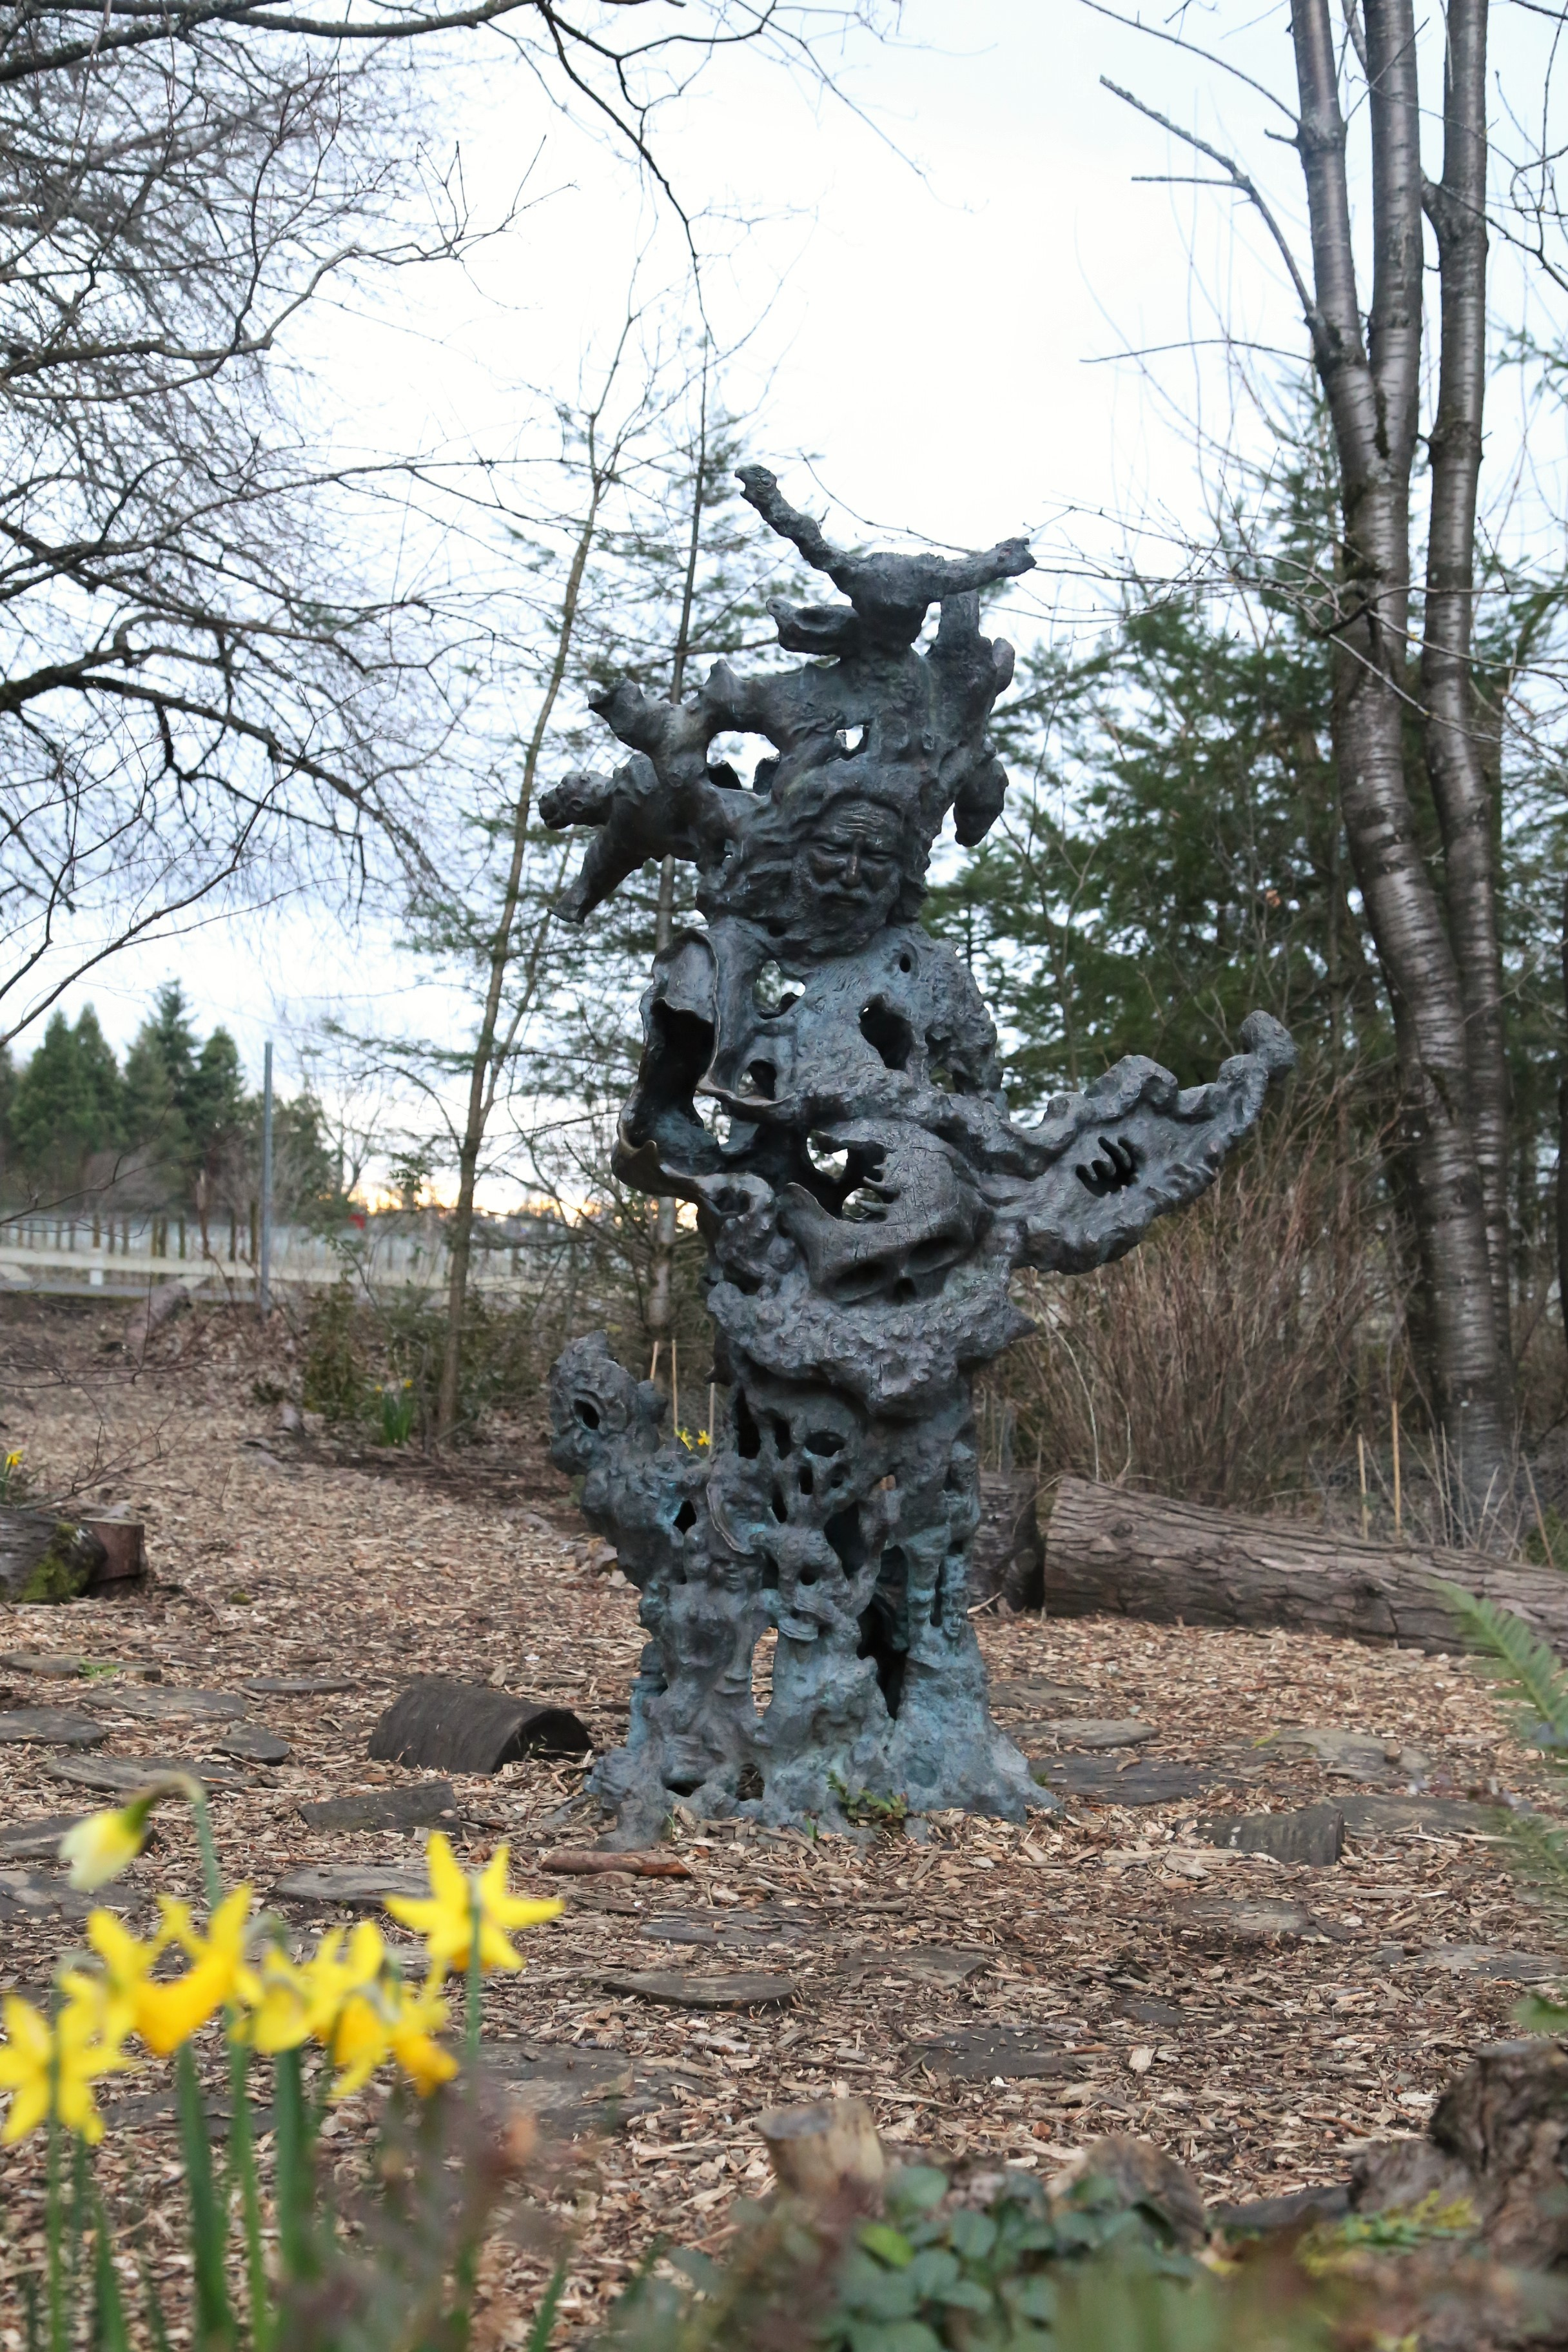 There are more spots then just Jerry's Ice House that pay homage to the great performer, here is a Jerry Garcia statue found on the grounds.